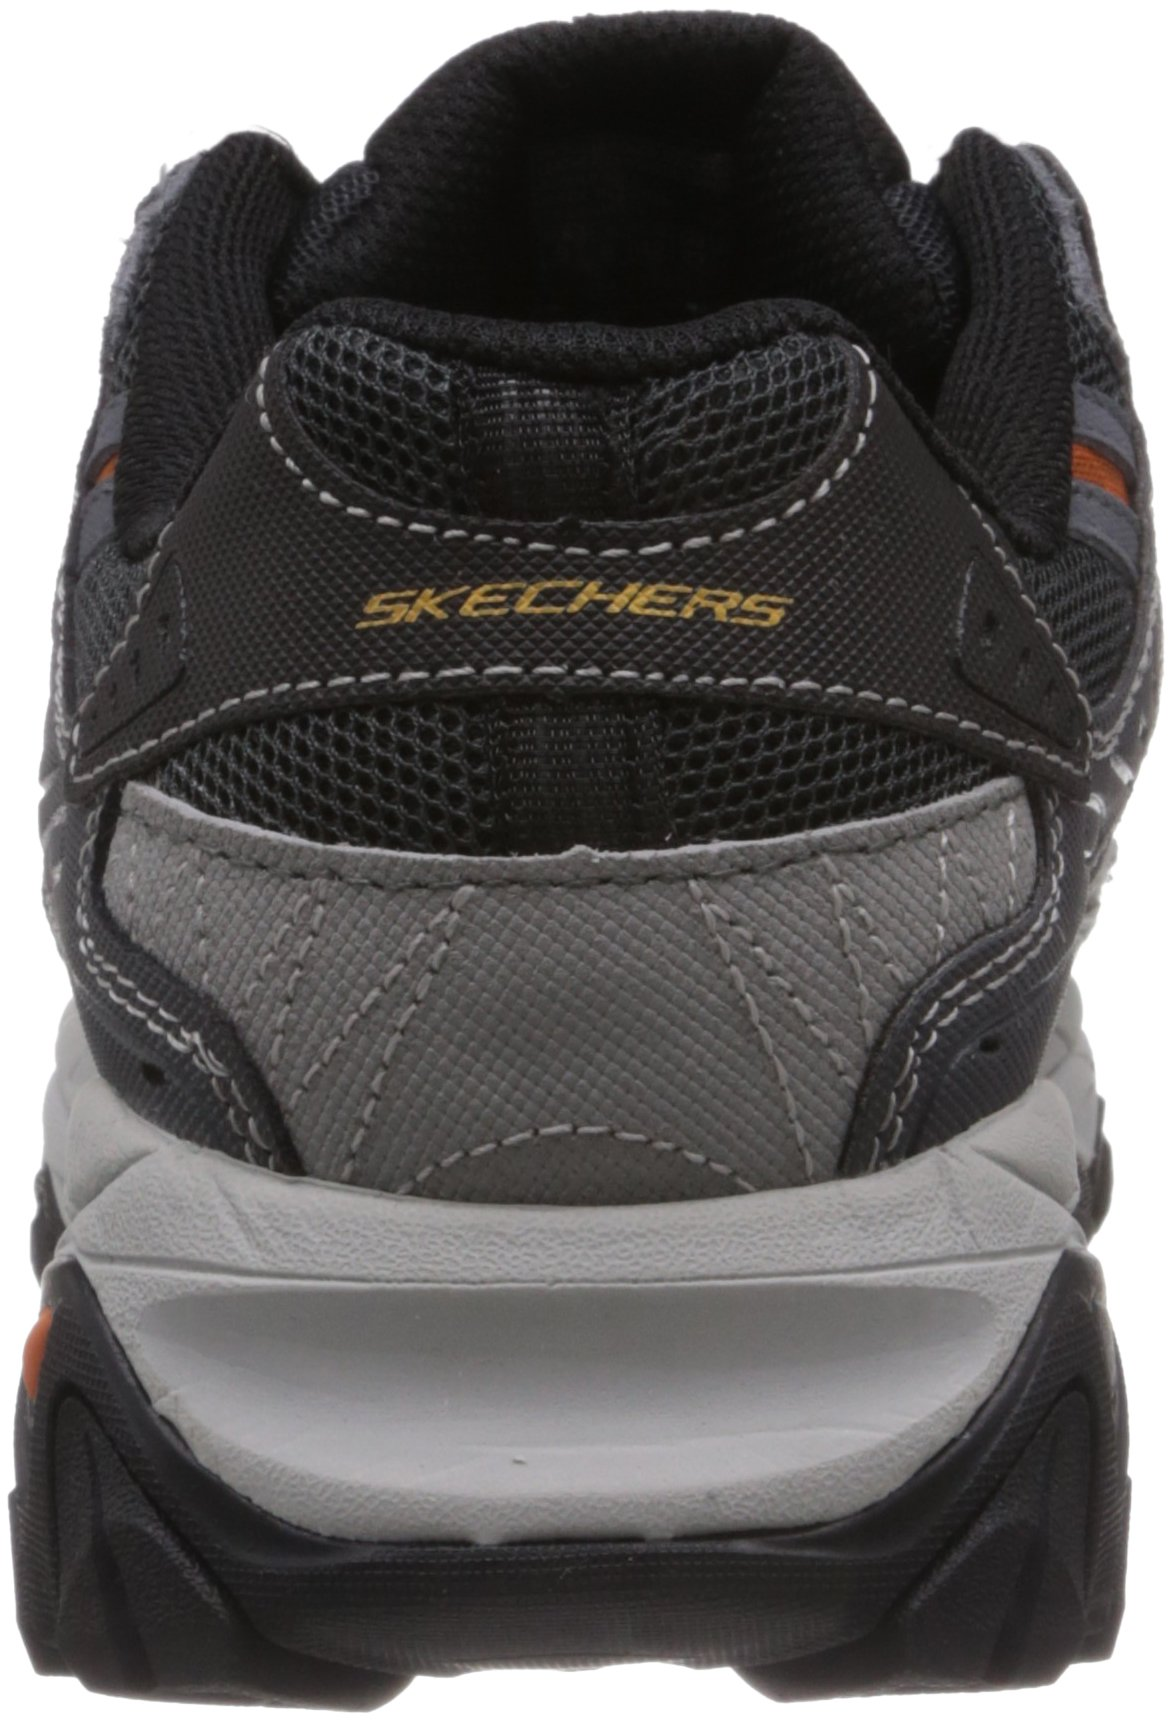 Skechers Sport Men's Afterburn Memory Foam Lace-Up Sneaker, Charcoal, 7 M US by Skechers (Image #2)